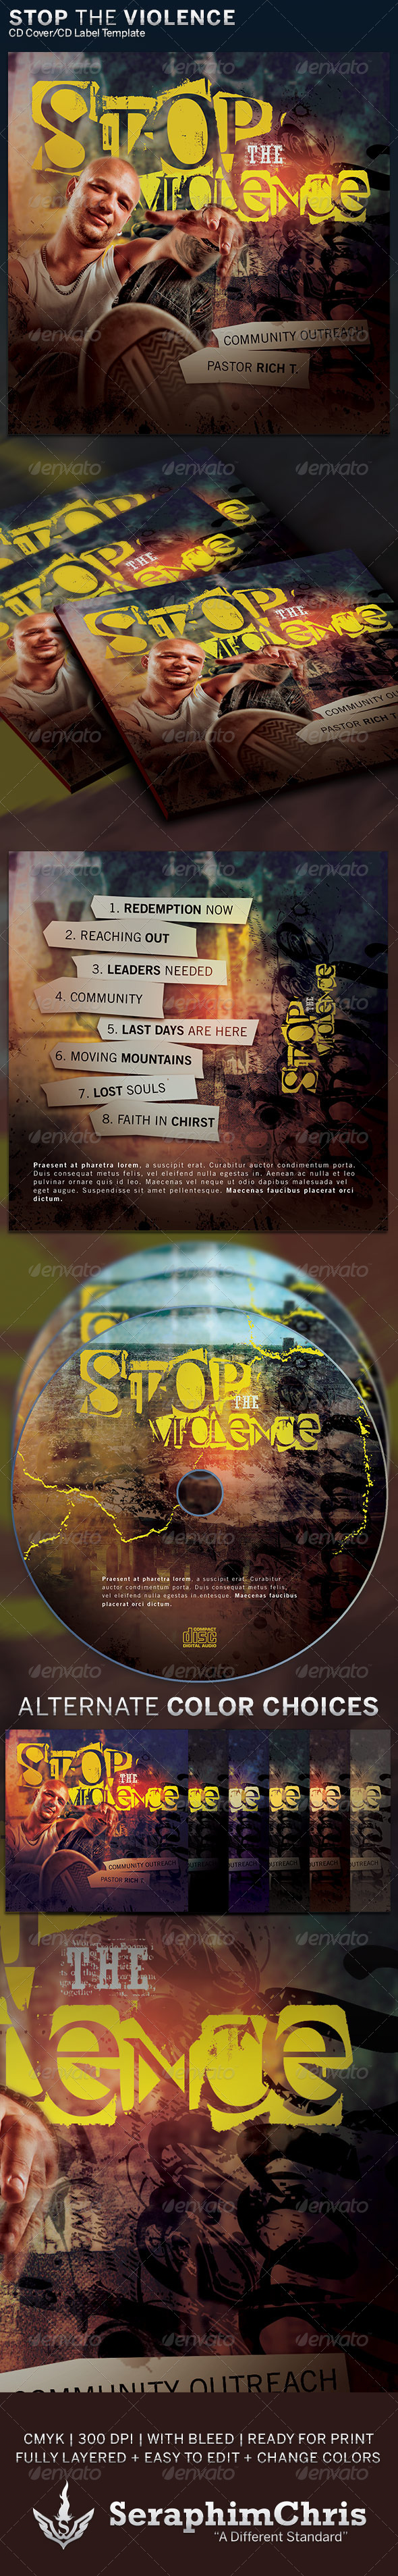 GraphicRiver Stop the Violence CD Cover Artwork Template 6296760